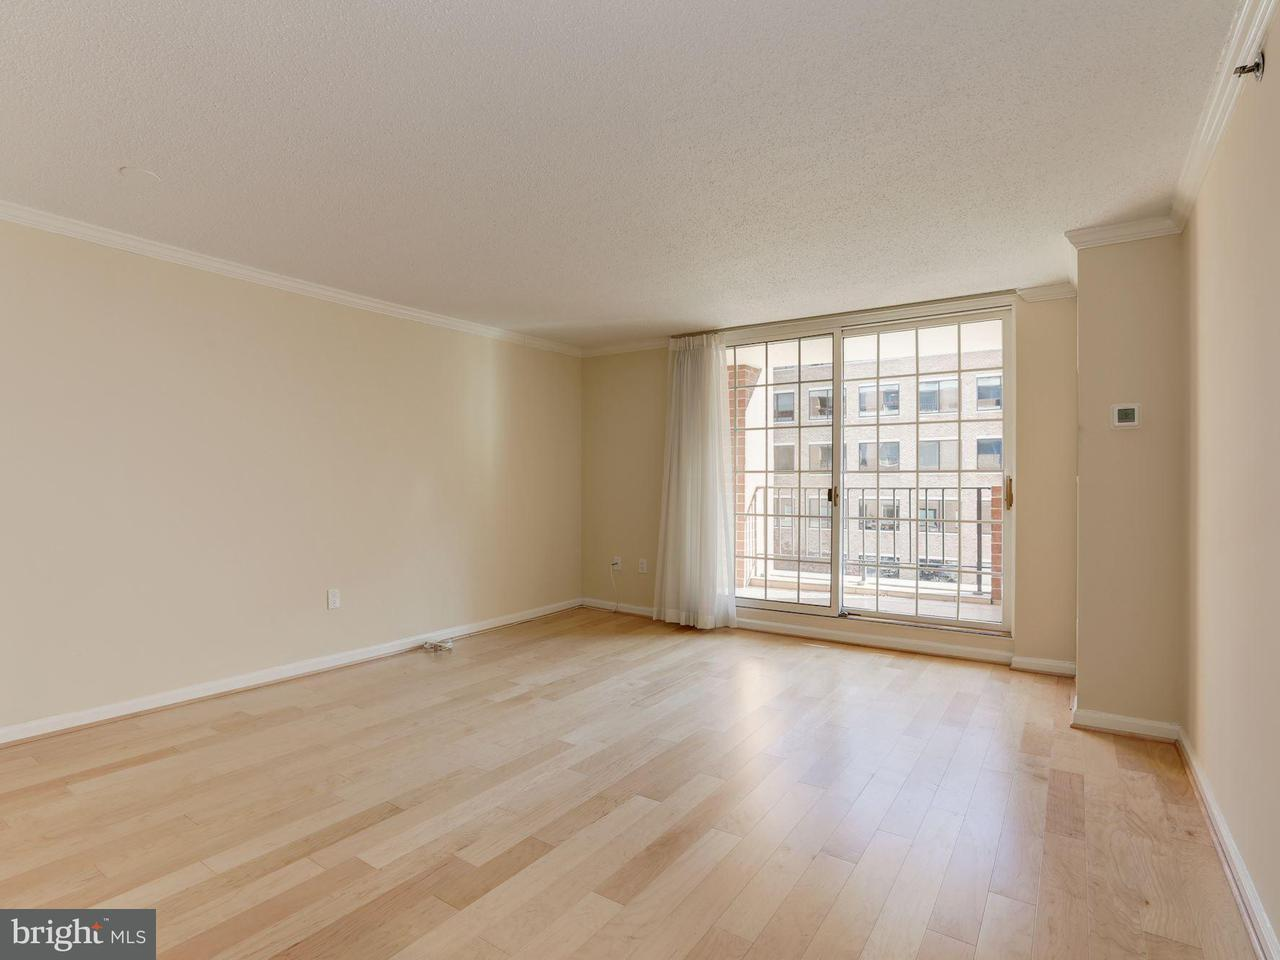 Condominium for Rent at 1230 23rd St NW #715 Washington, District Of Columbia 20037 United States